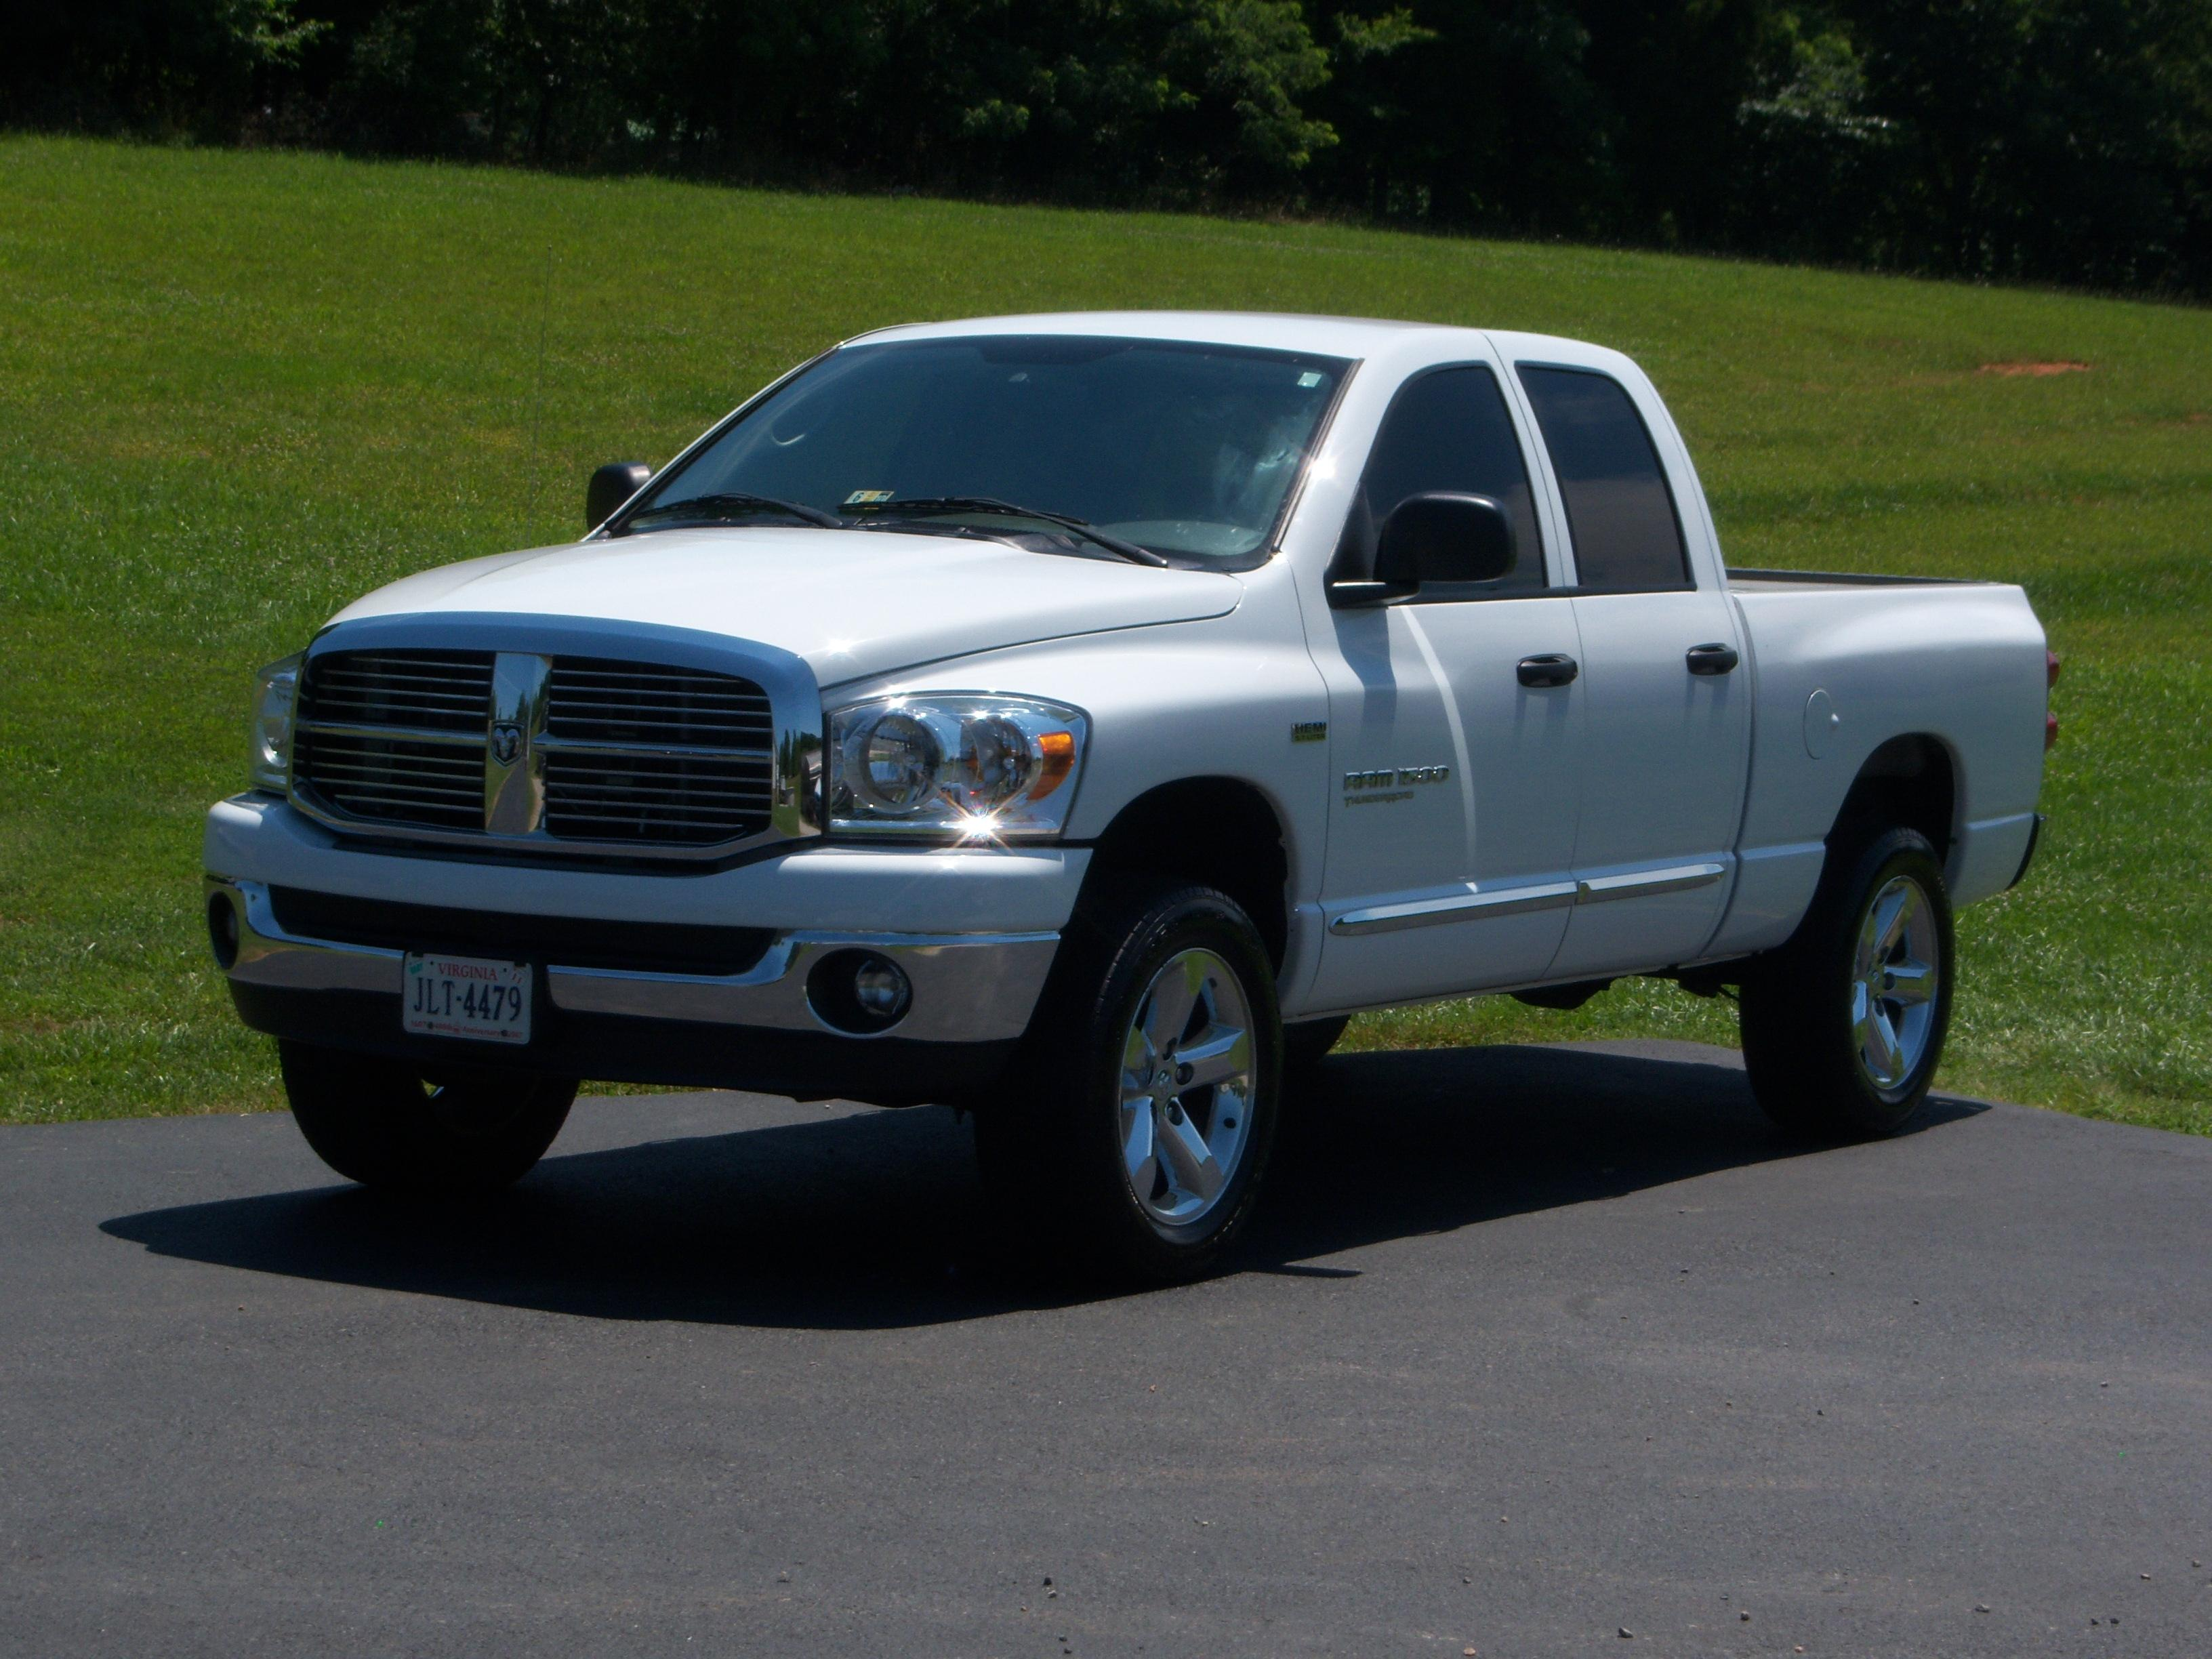 robbye02ram 2007 dodge ram 1500 regular cab specs photos modification info at cardomain. Black Bedroom Furniture Sets. Home Design Ideas